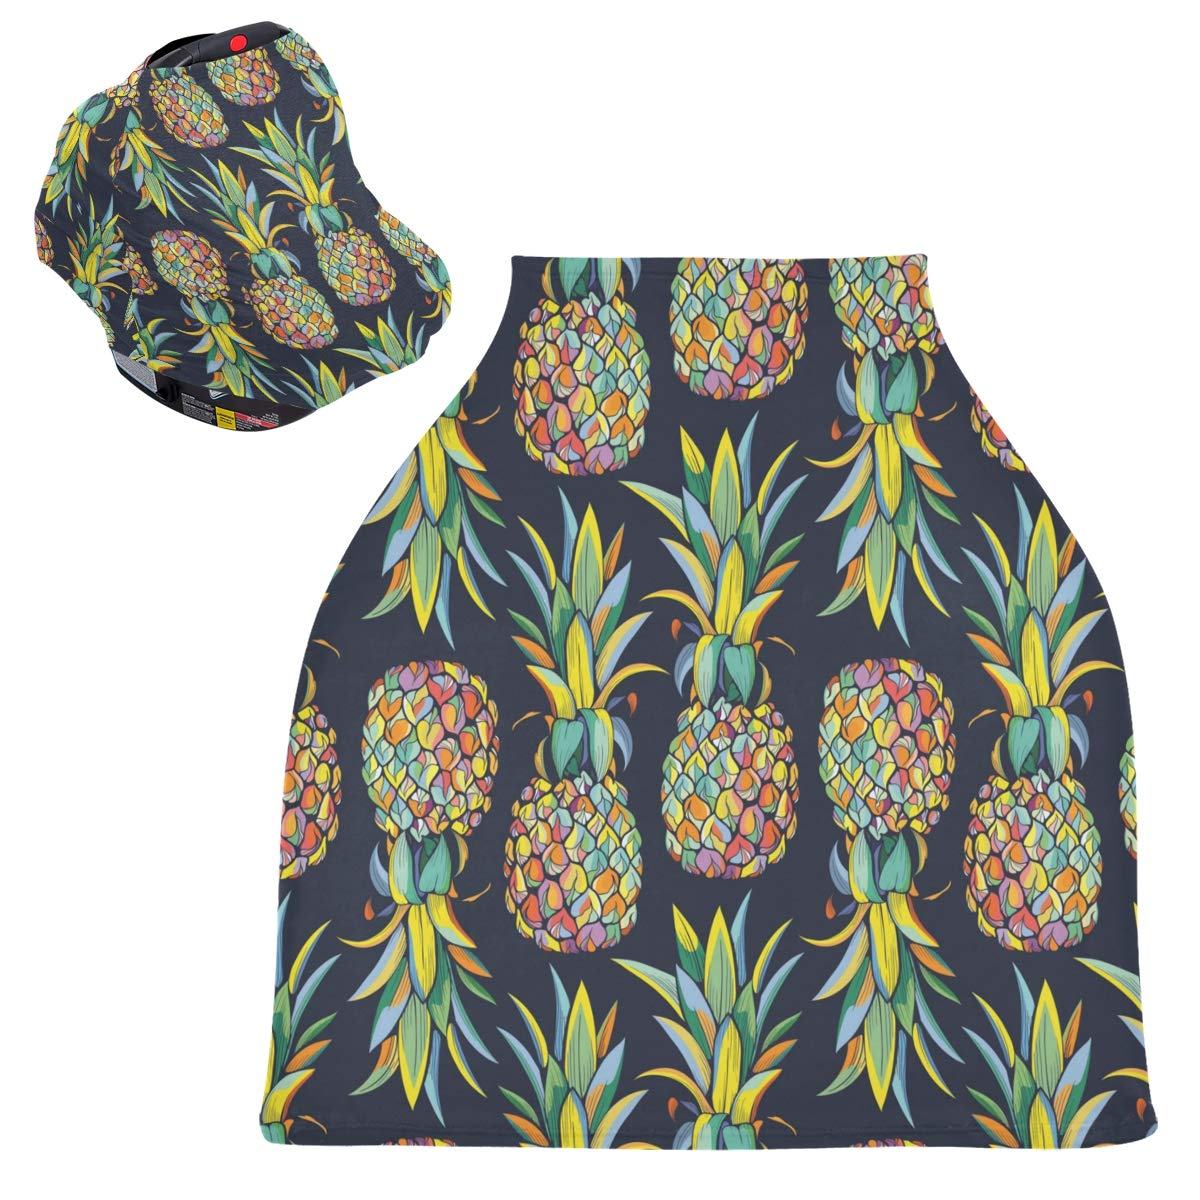 Stretchy Baby Car Seat Canopy - Colorful Pineapples Blue Background Infant Stroller Cover Multi Use Carseat Canopy Cover Nursing Cover for Baby Boy and Girl